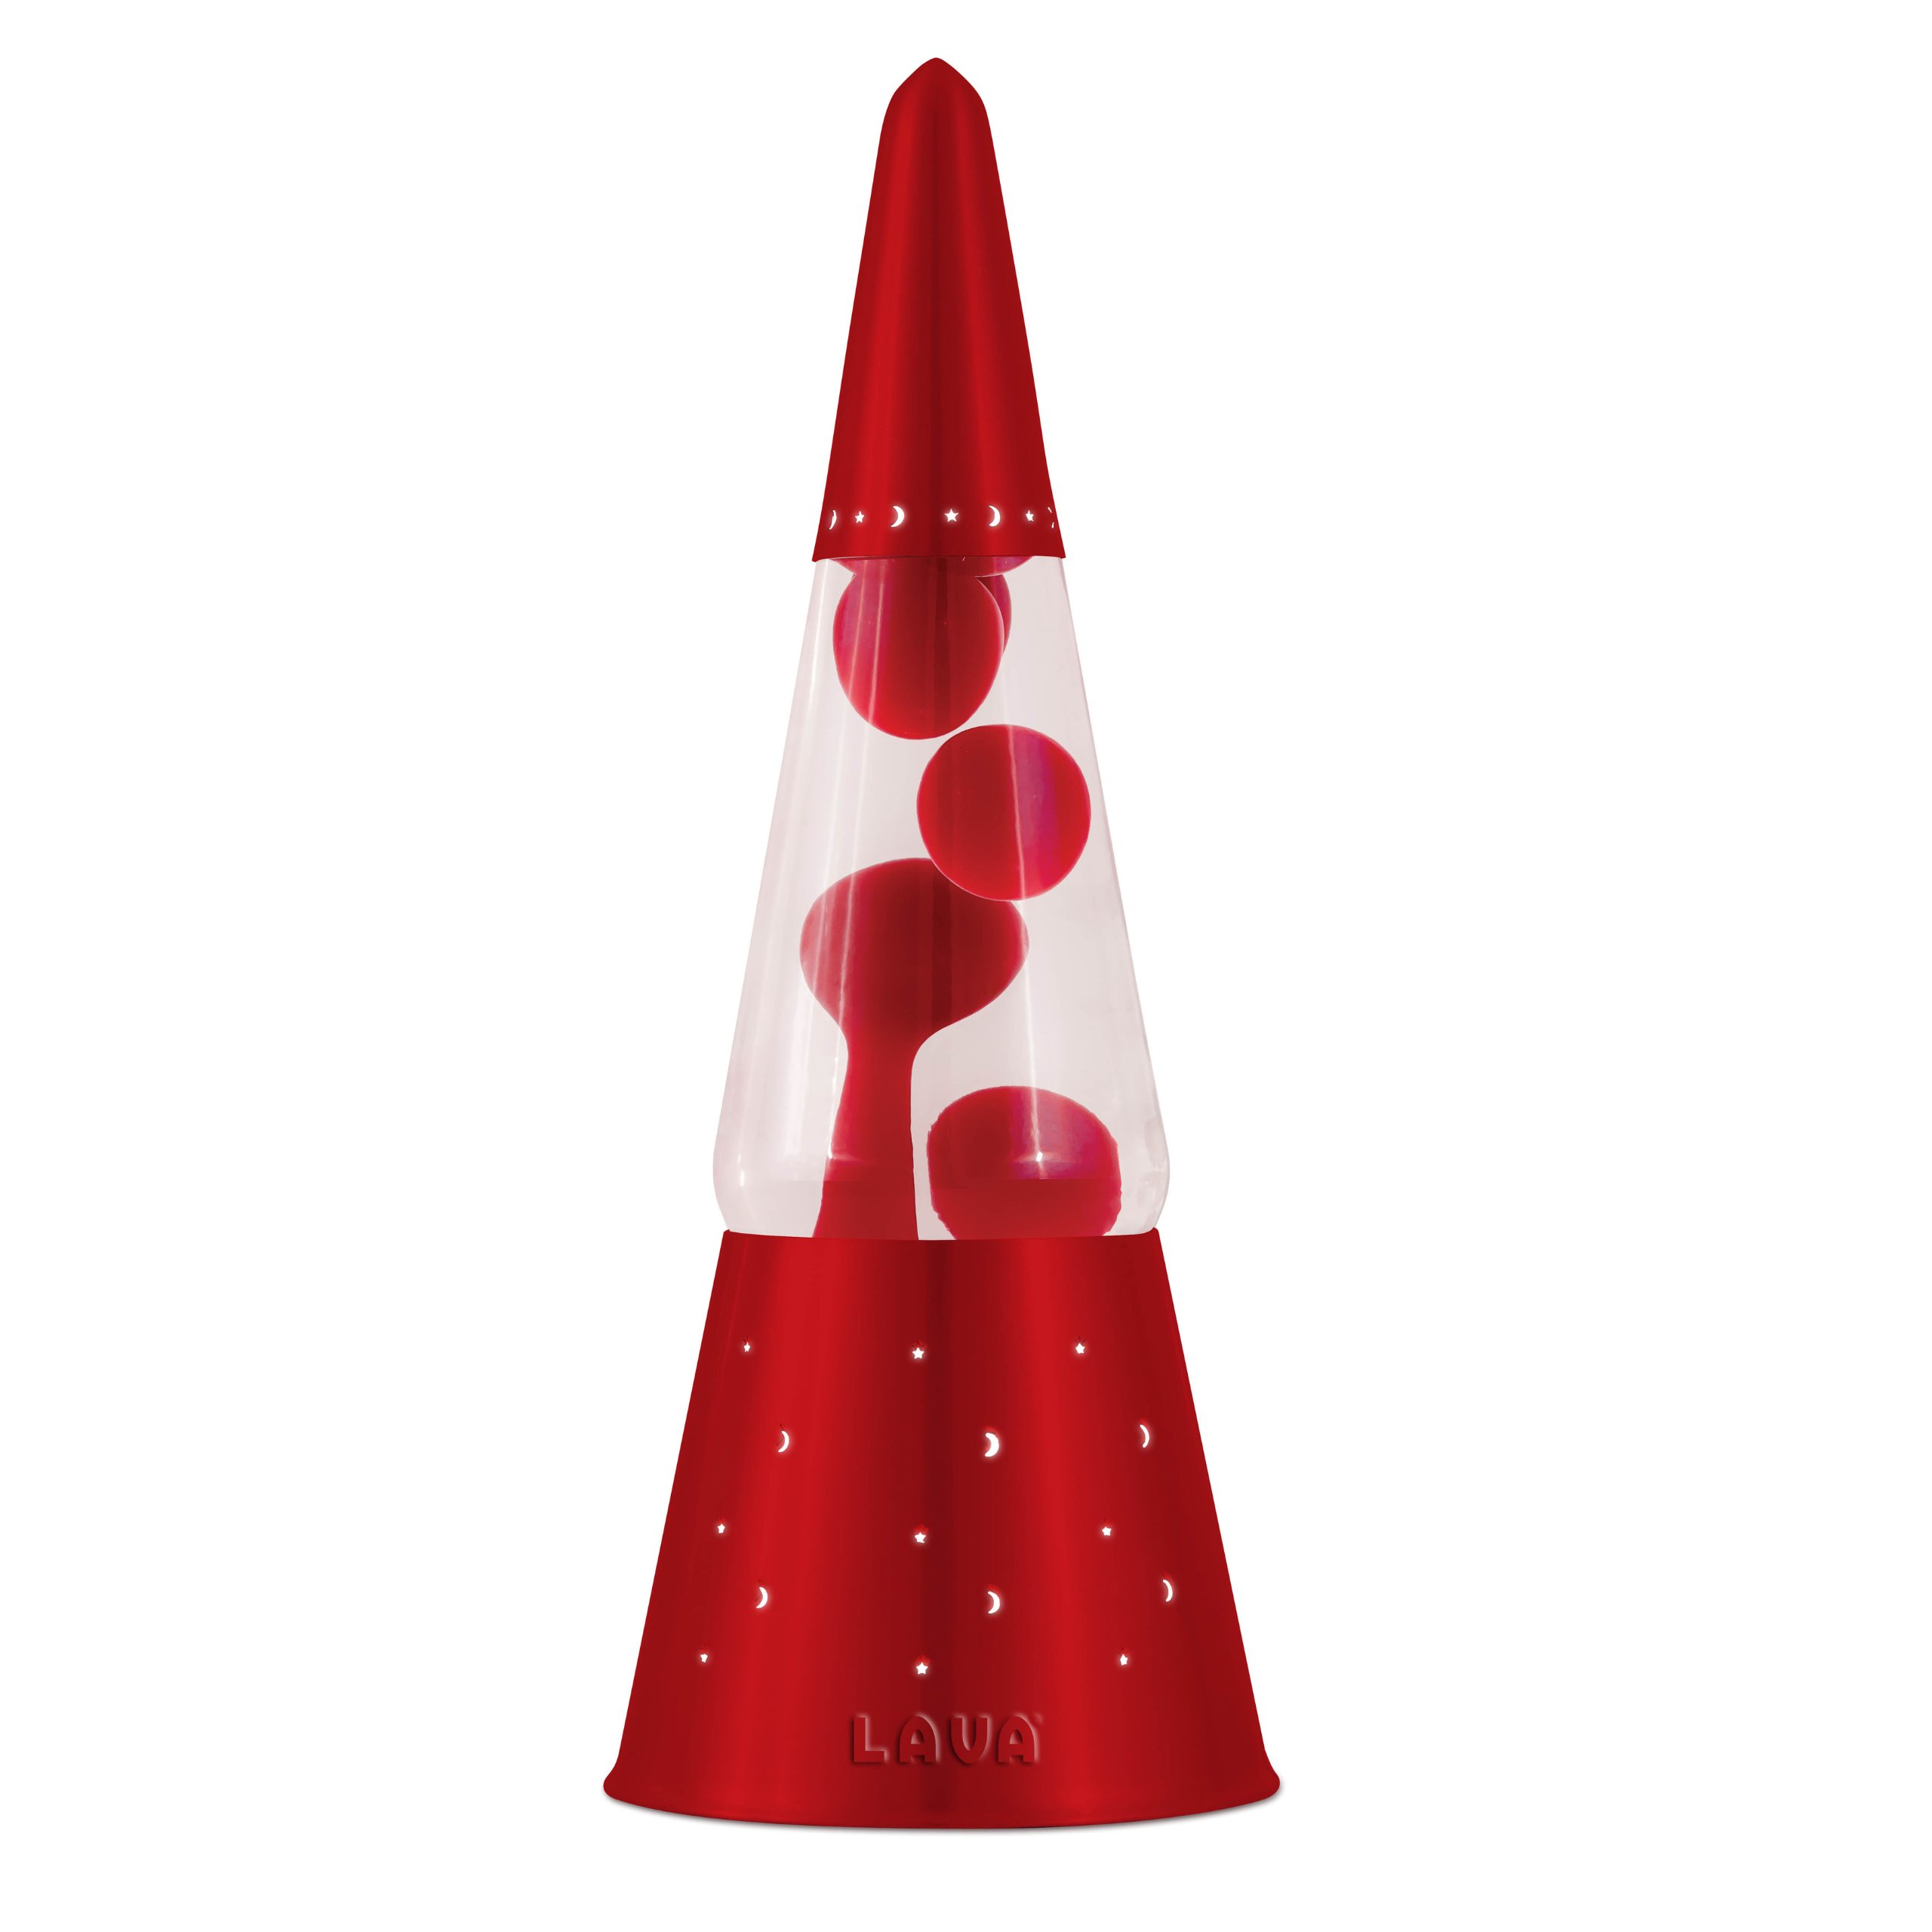 Lava Lite 6020 Heritage Collection 16.3-Inch Wizard Lava Lamp with Red Base, Red Wax/Clear Liquid